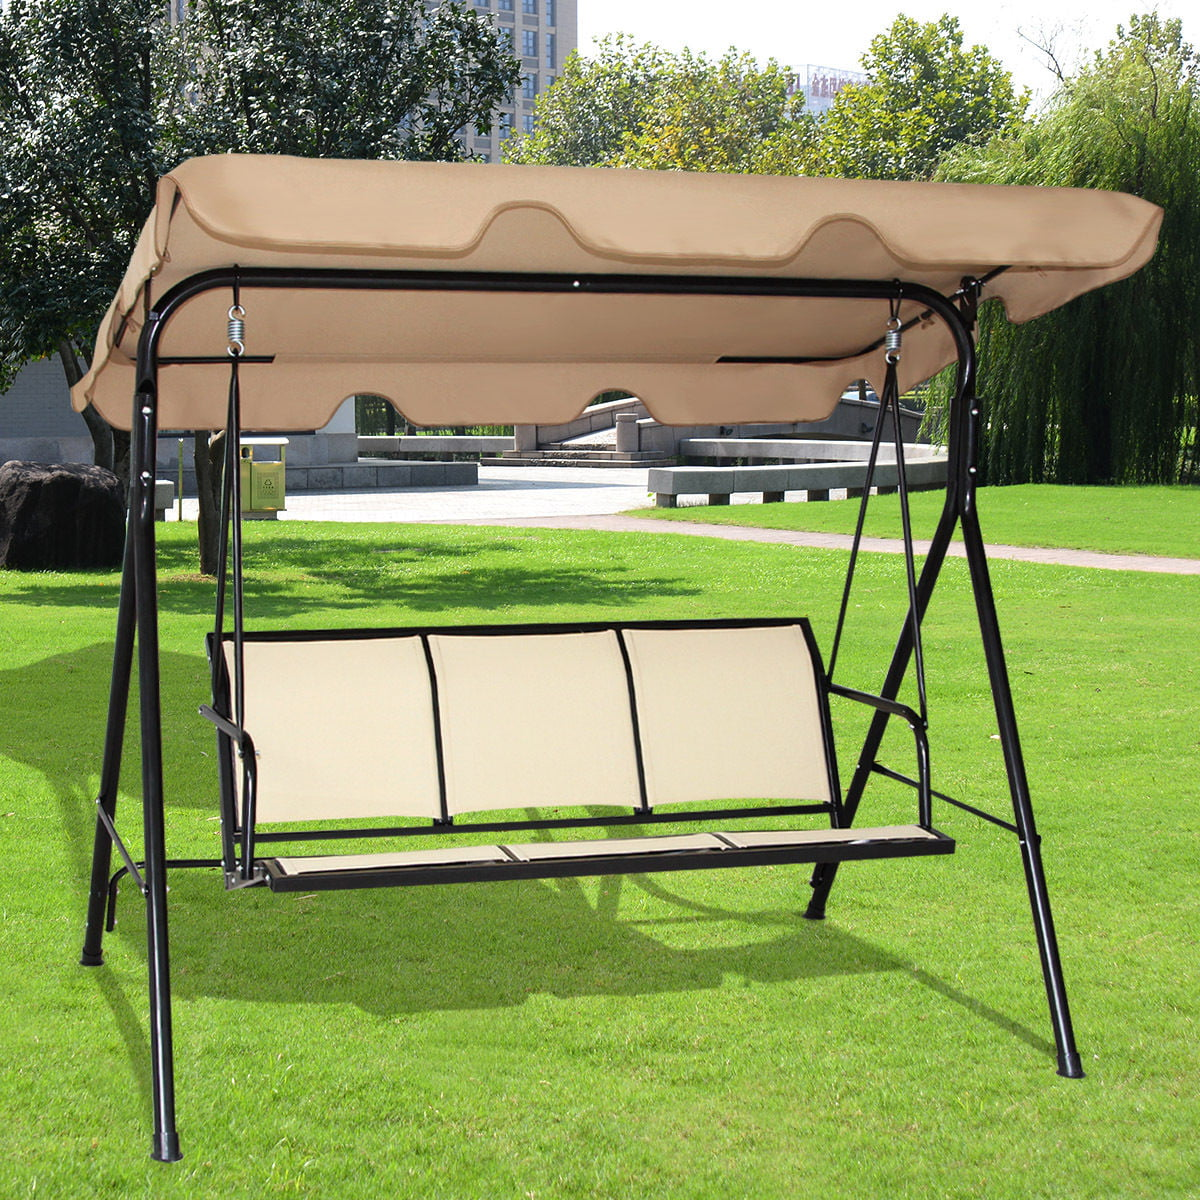 costway outdoor patio swing canopy 3 person canopy swing chair patio hammock brown. Black Bedroom Furniture Sets. Home Design Ideas